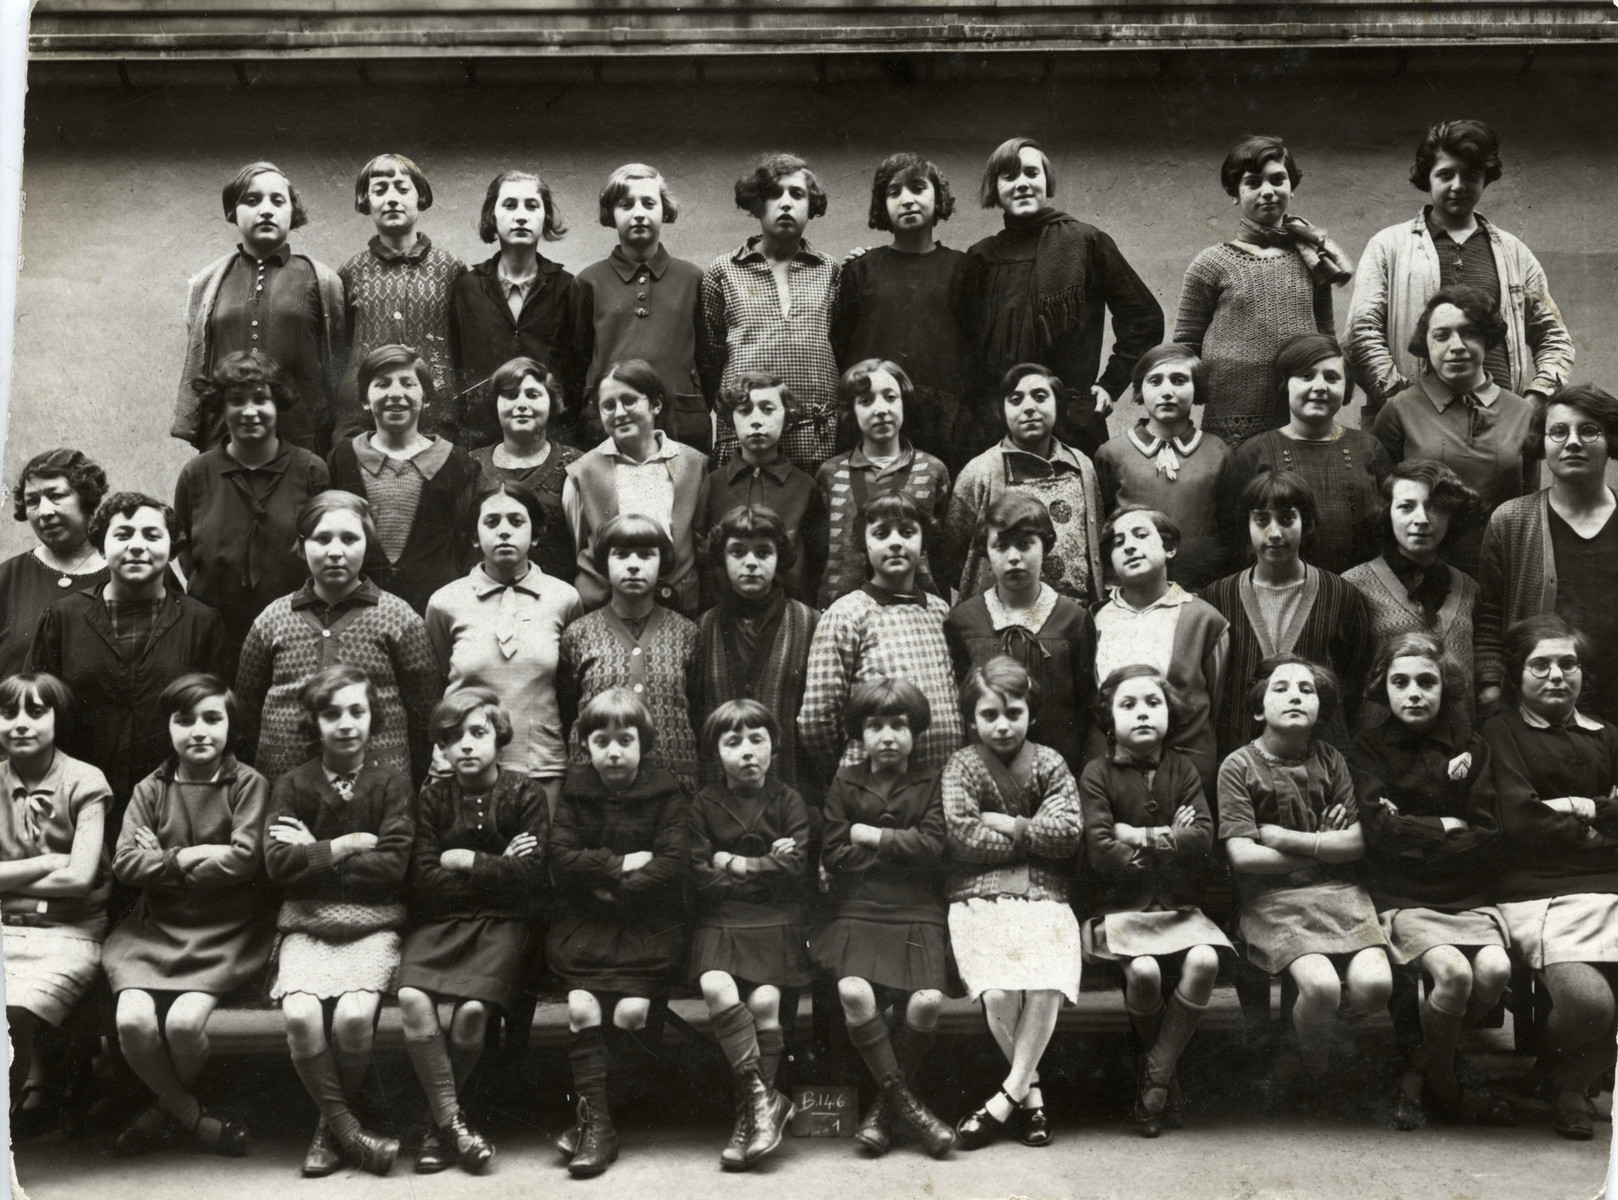 Group portrait of the girls in the Ecole Israelites, Hospitaliers St. Gervais, a school for Jewish refugees in Paris.  Miriam Einhorn is pictured in the top row, fifth from the left.